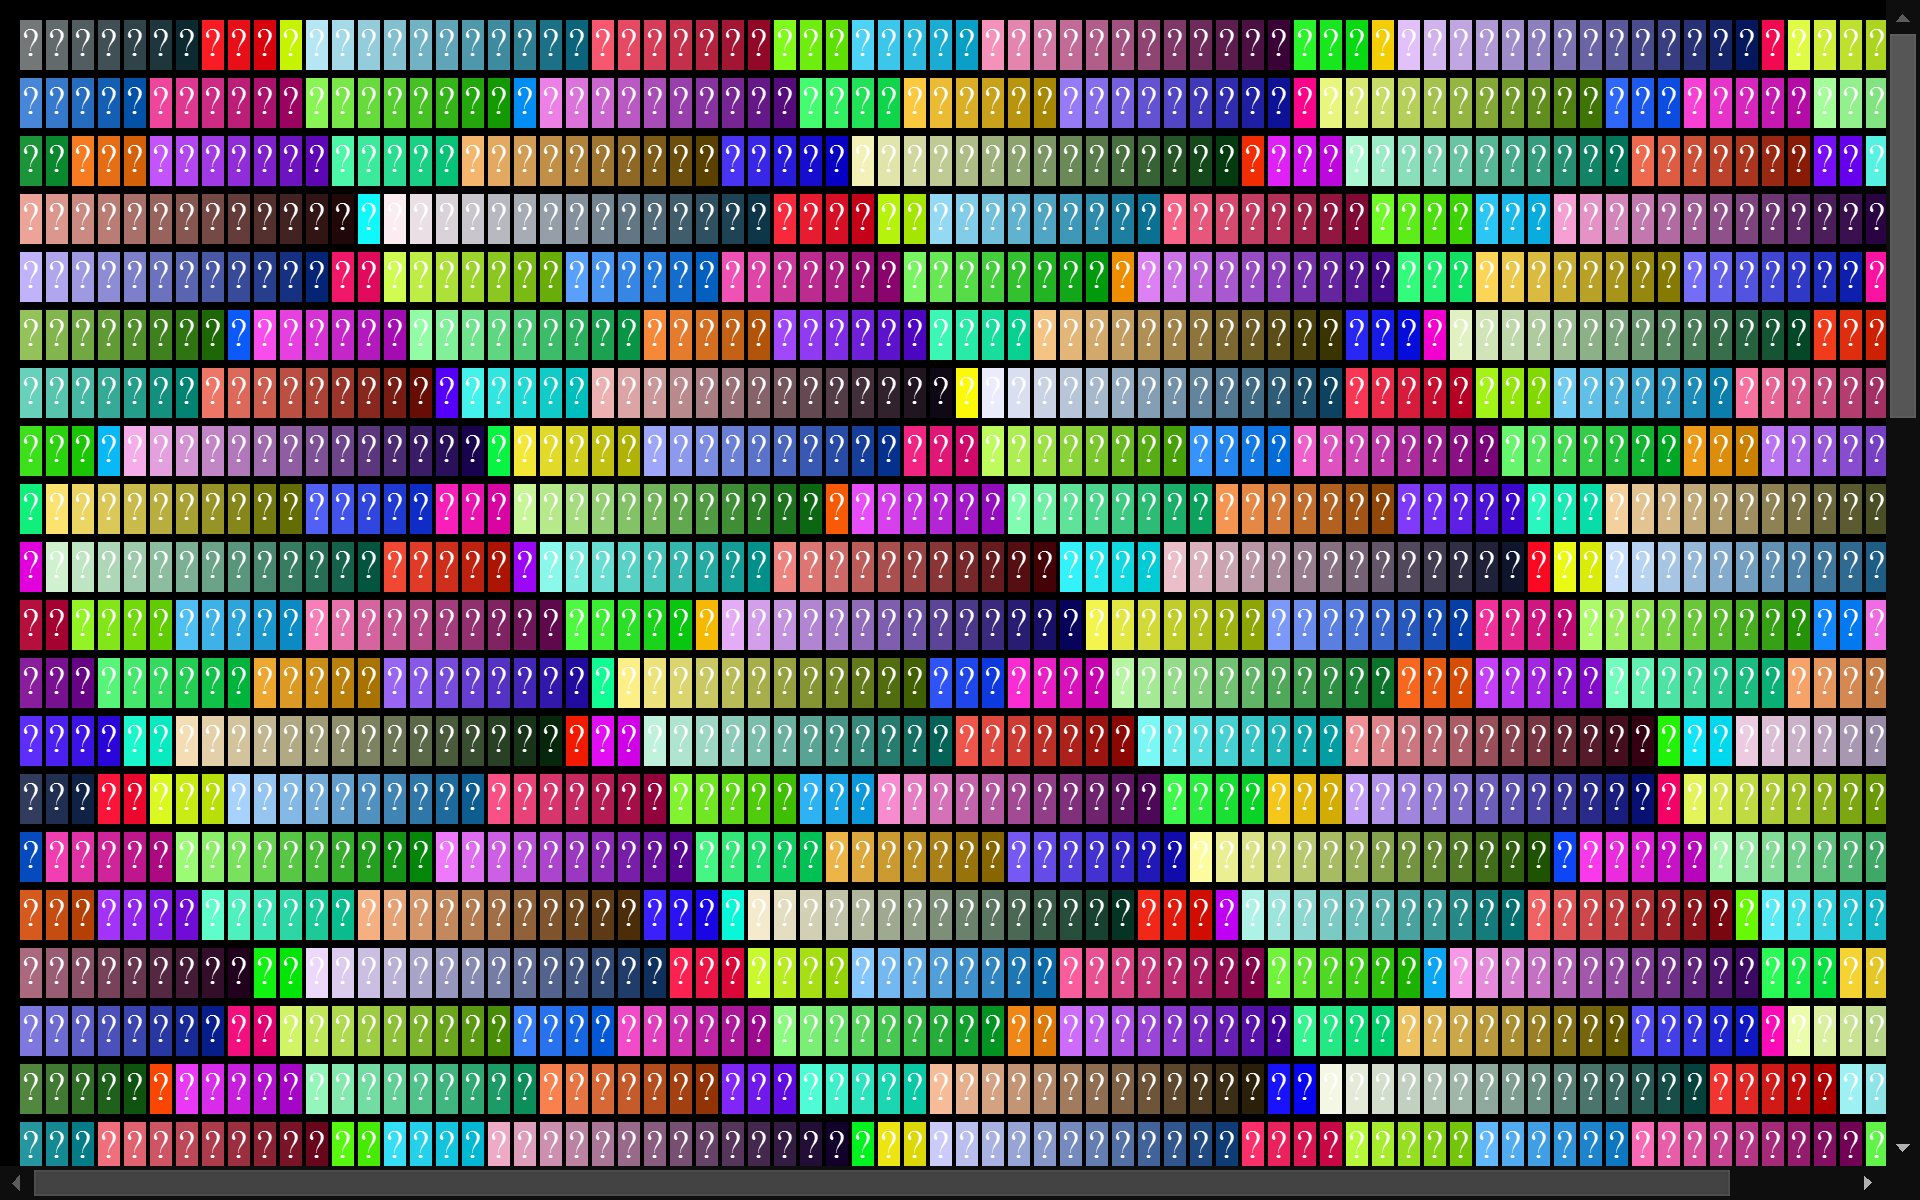 colortable 420 math calculates the colors of this HTML ...